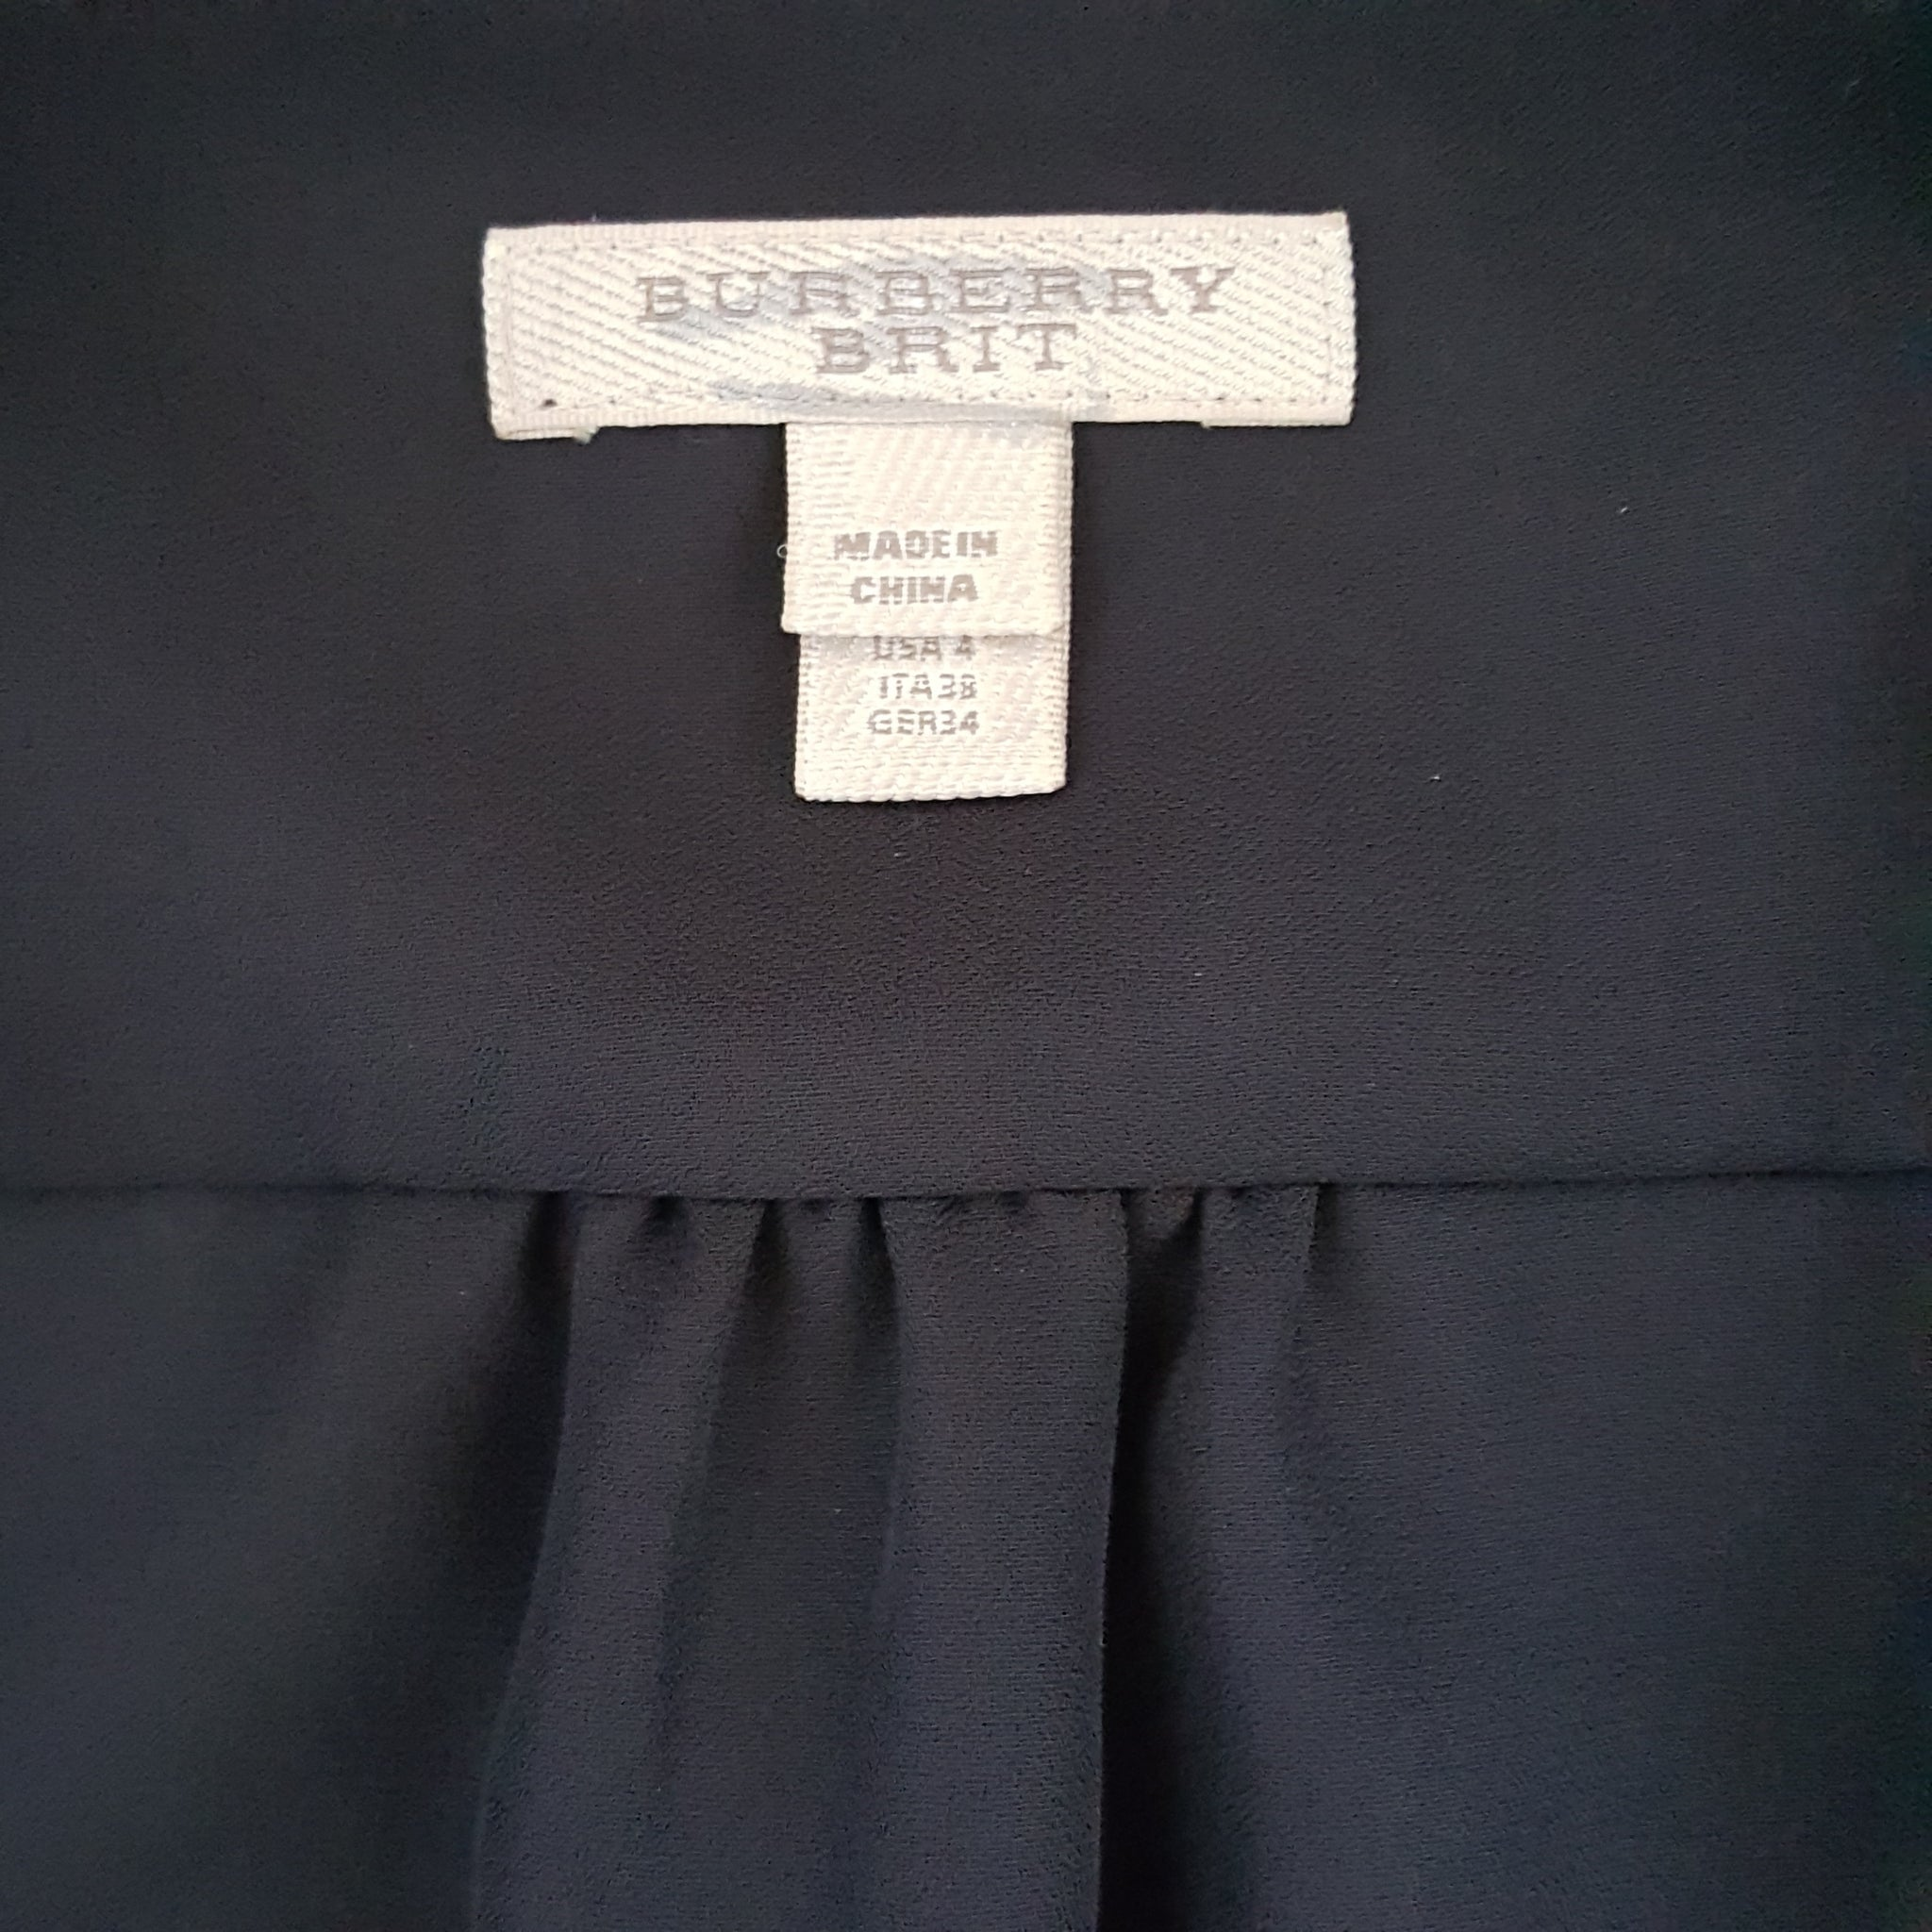 BURBERRY BRIT ELENOR SILK DRESS - SIZE US 4